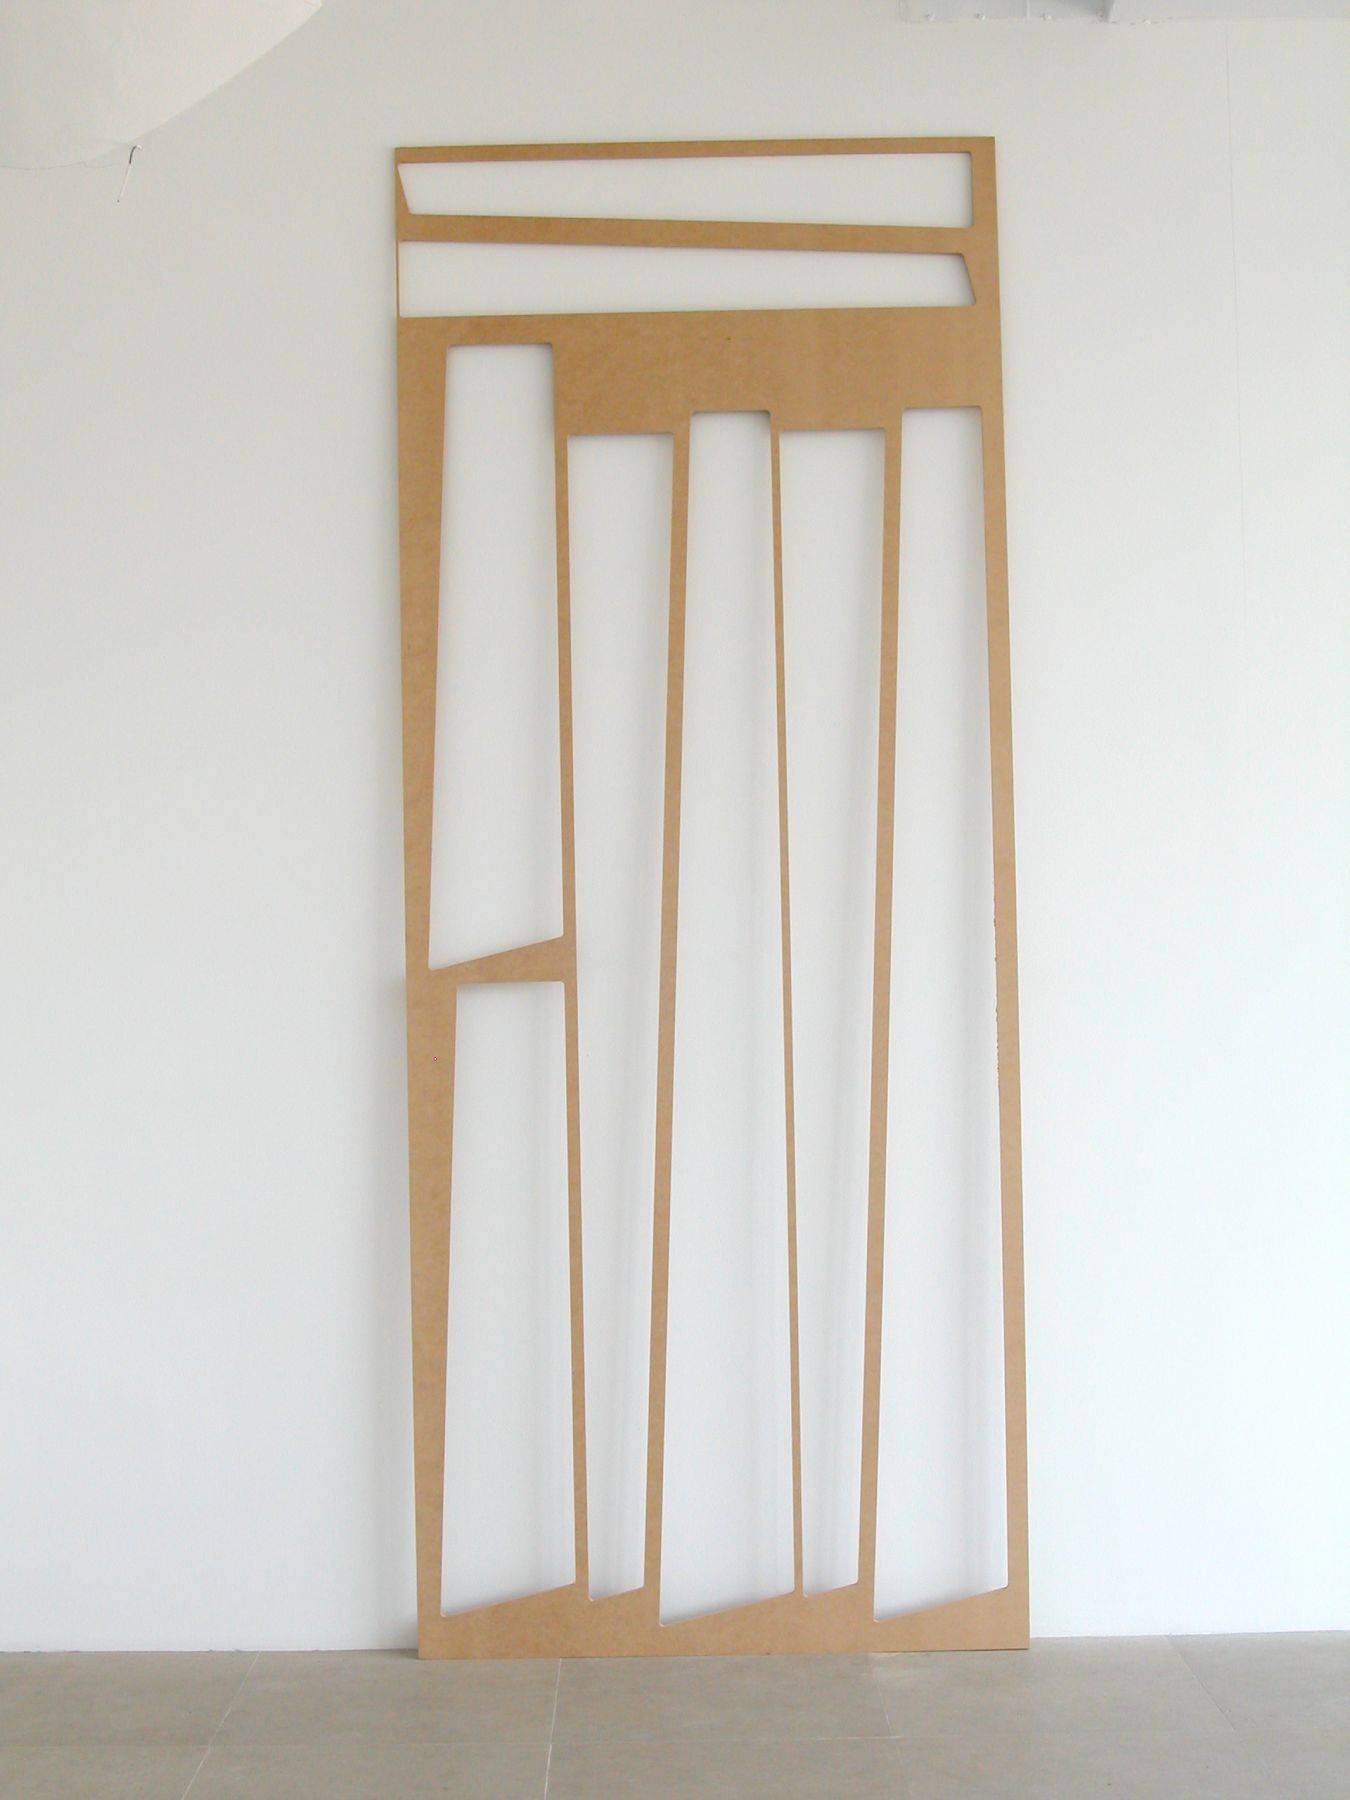 Where Now, 2008, Masonite, 119 x 46 x 3.5 inches